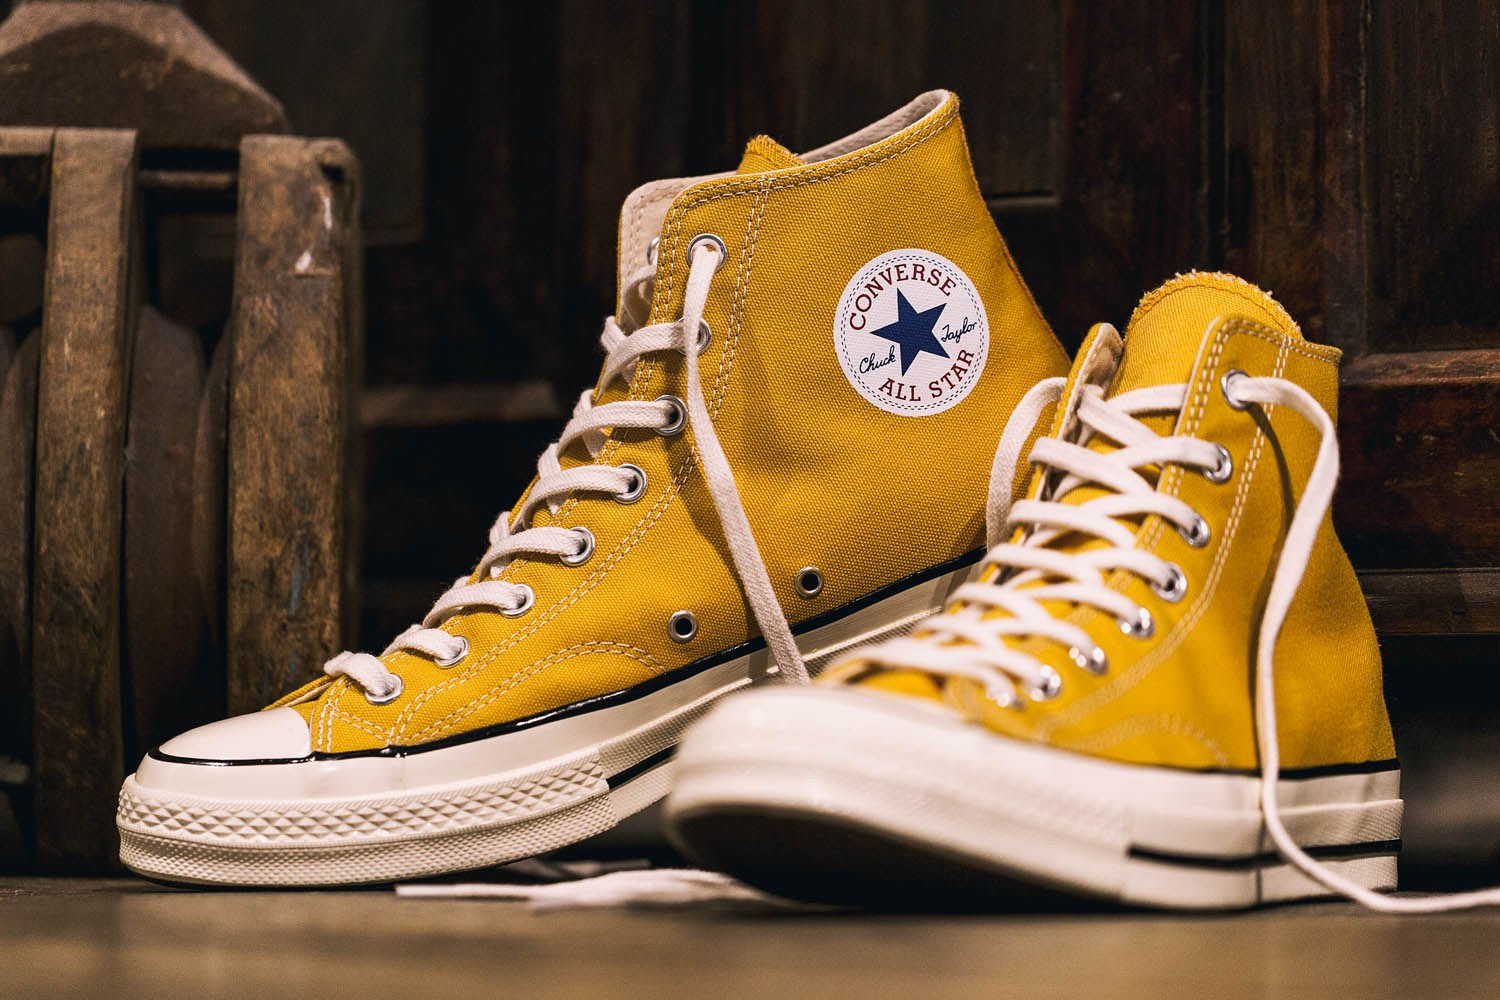 converse-shows-its-colors-with-its-latest-chuck-taylor-all-star-70s-release-8